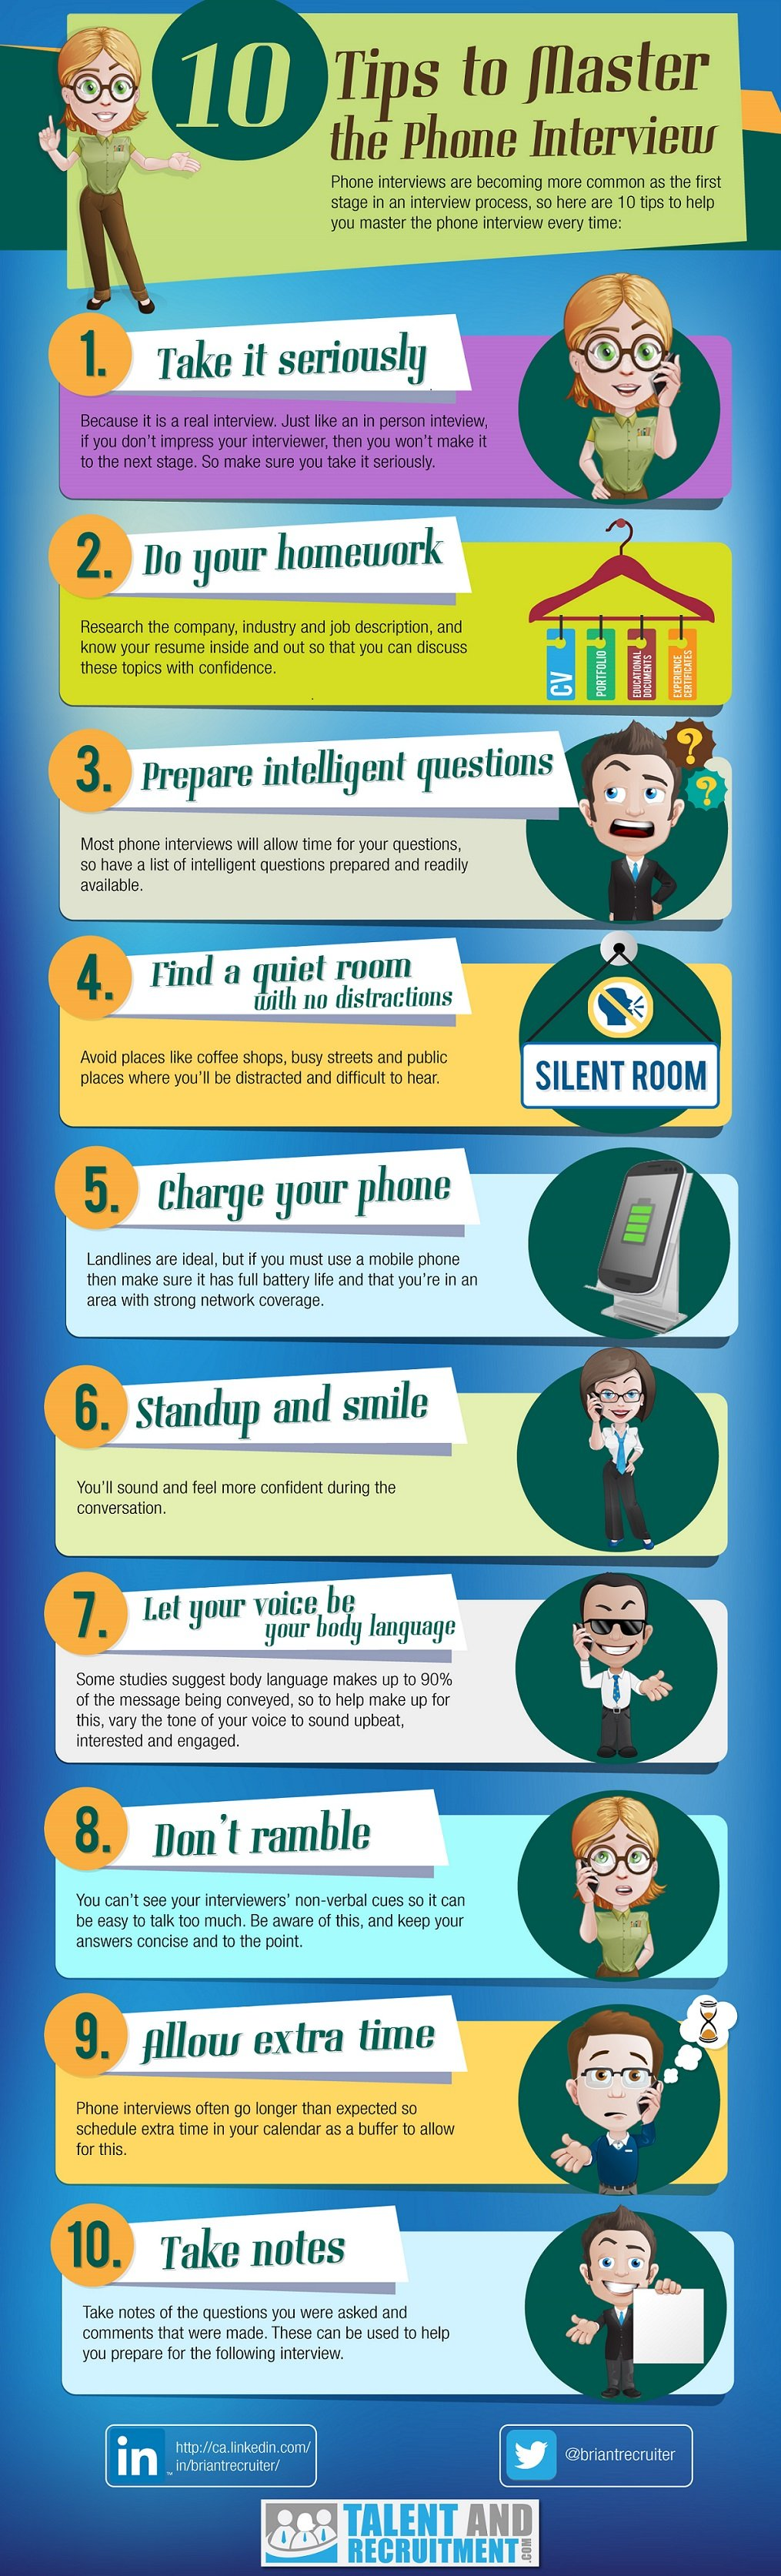 Top 10 Tips for a Great Phone Interview